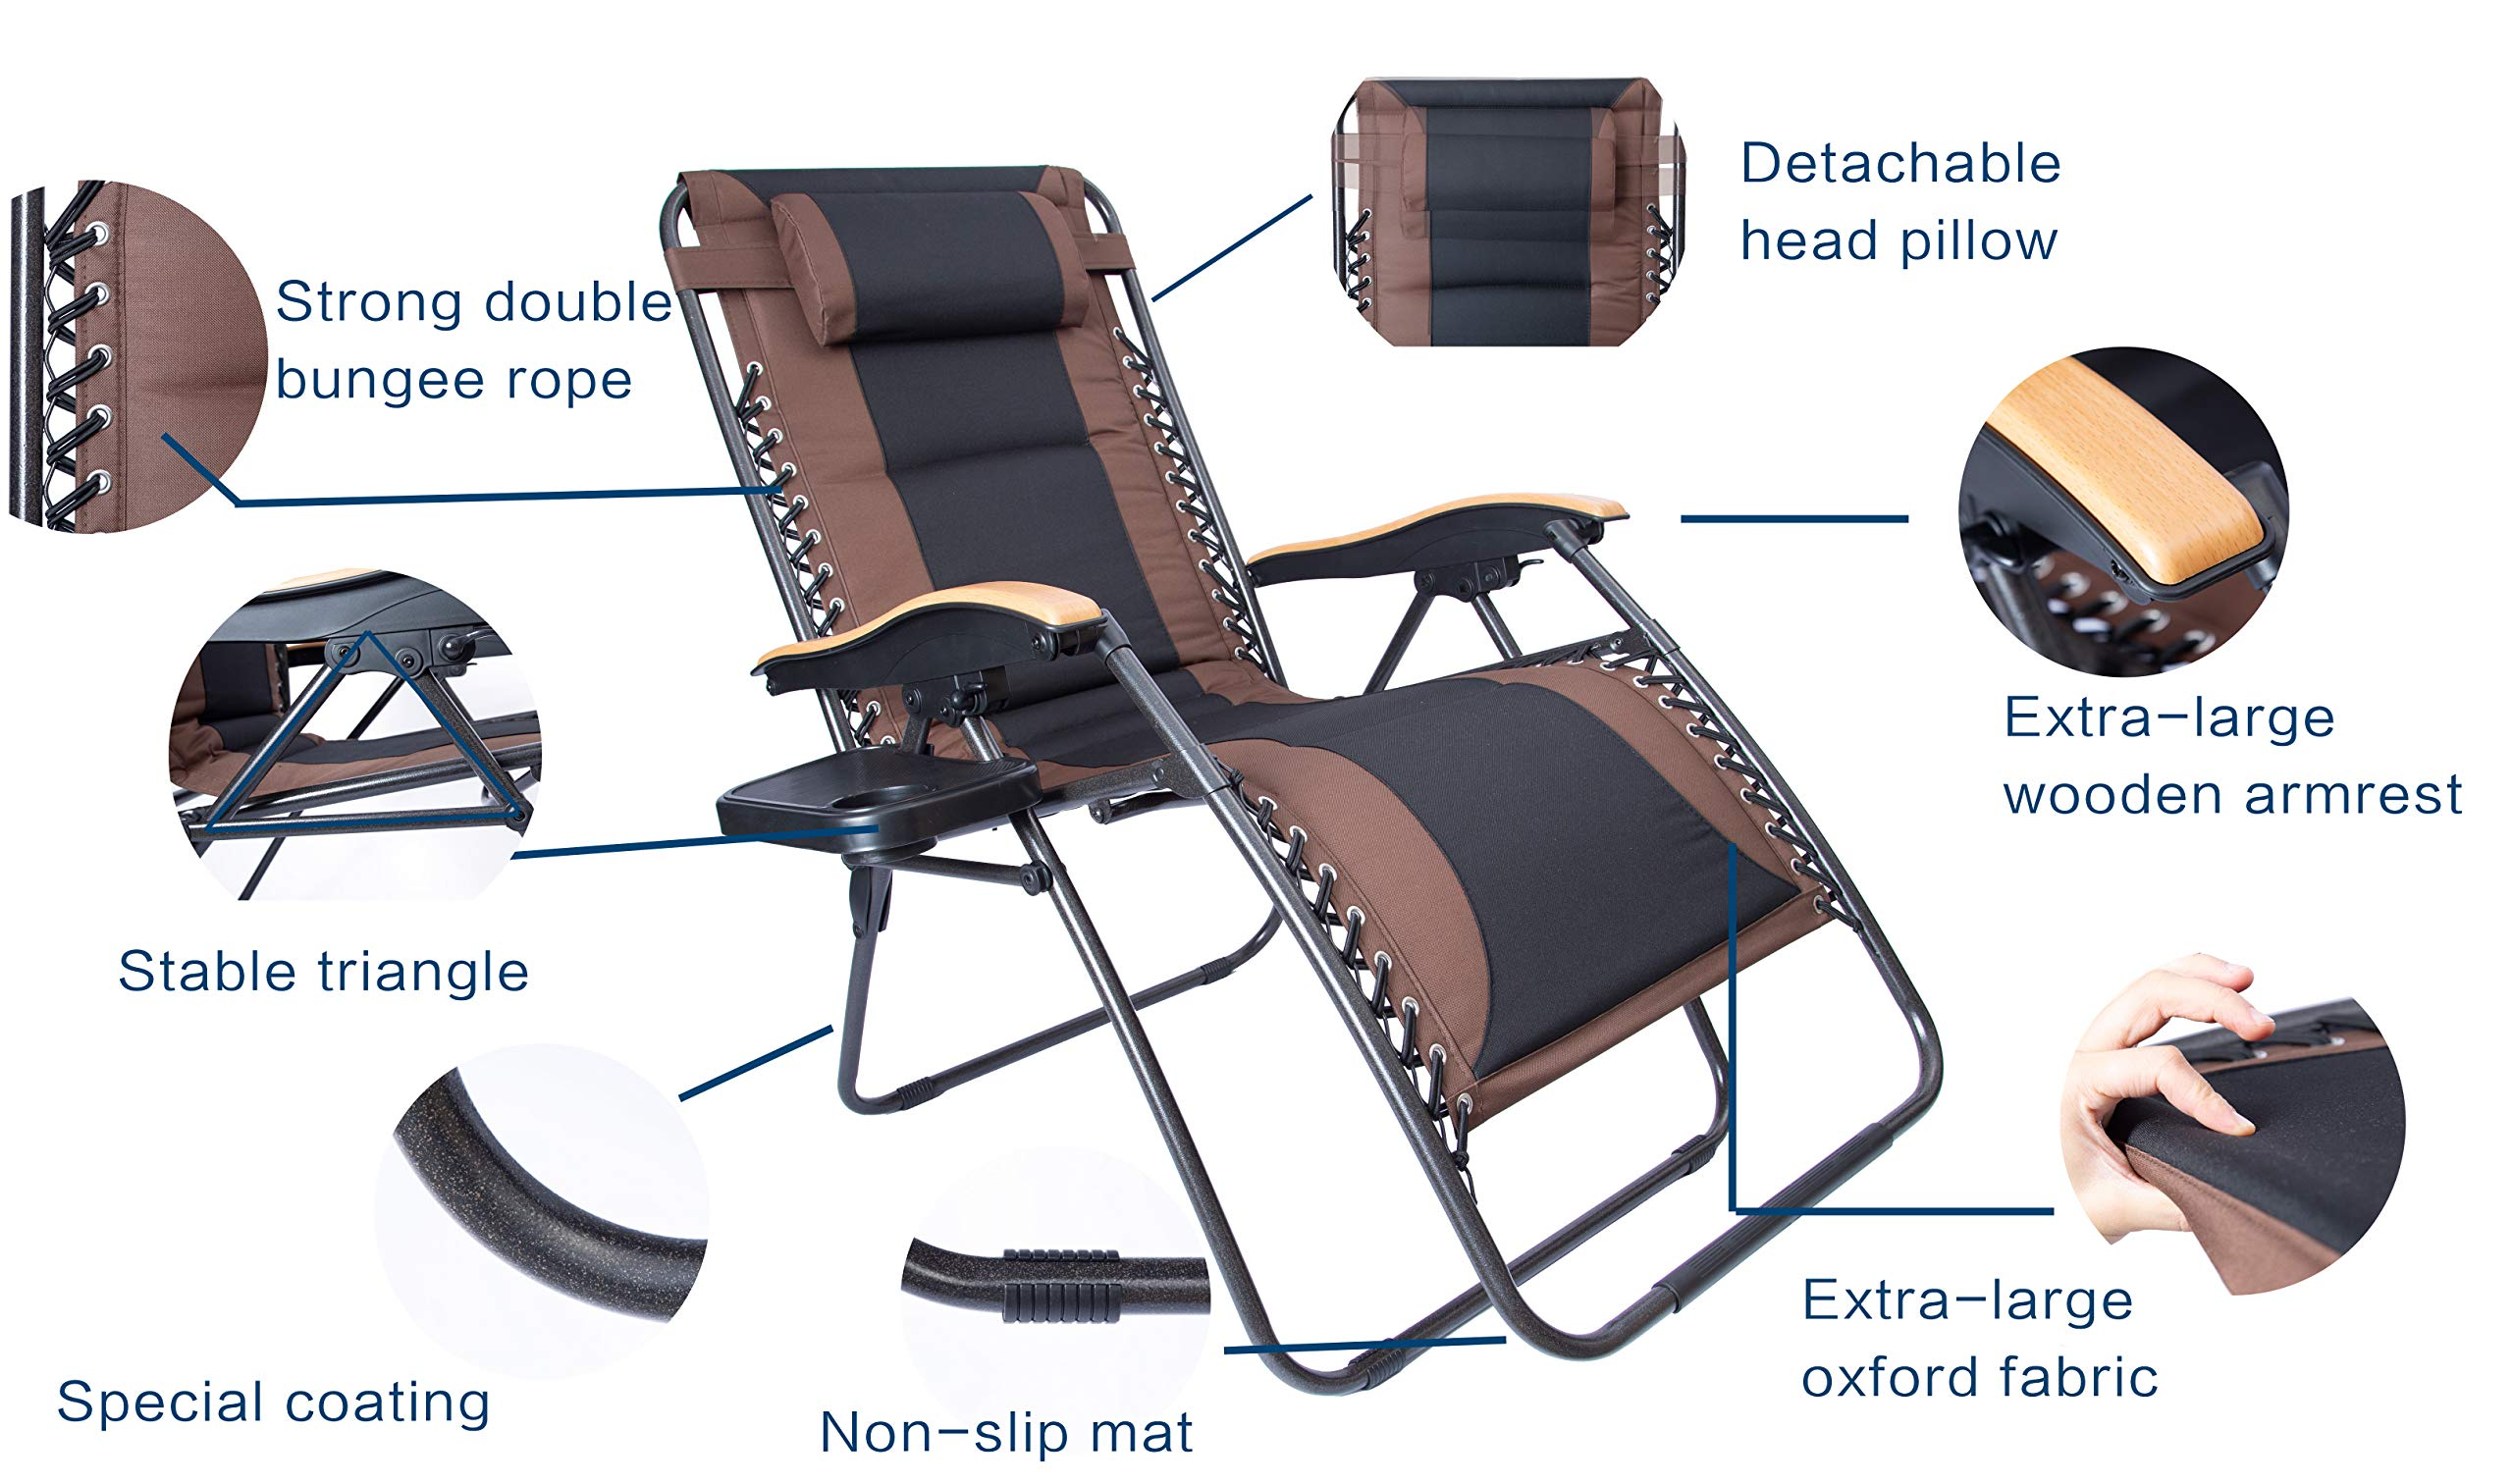 LUCKYBERRY Deluxe Oversized Padded Zero Gravity Chair XL Black Brown Cup Holder Lounge Patio Chairs Outdoor Yard Beach Support 350lbs by LUCKYBERRY (Image #5)